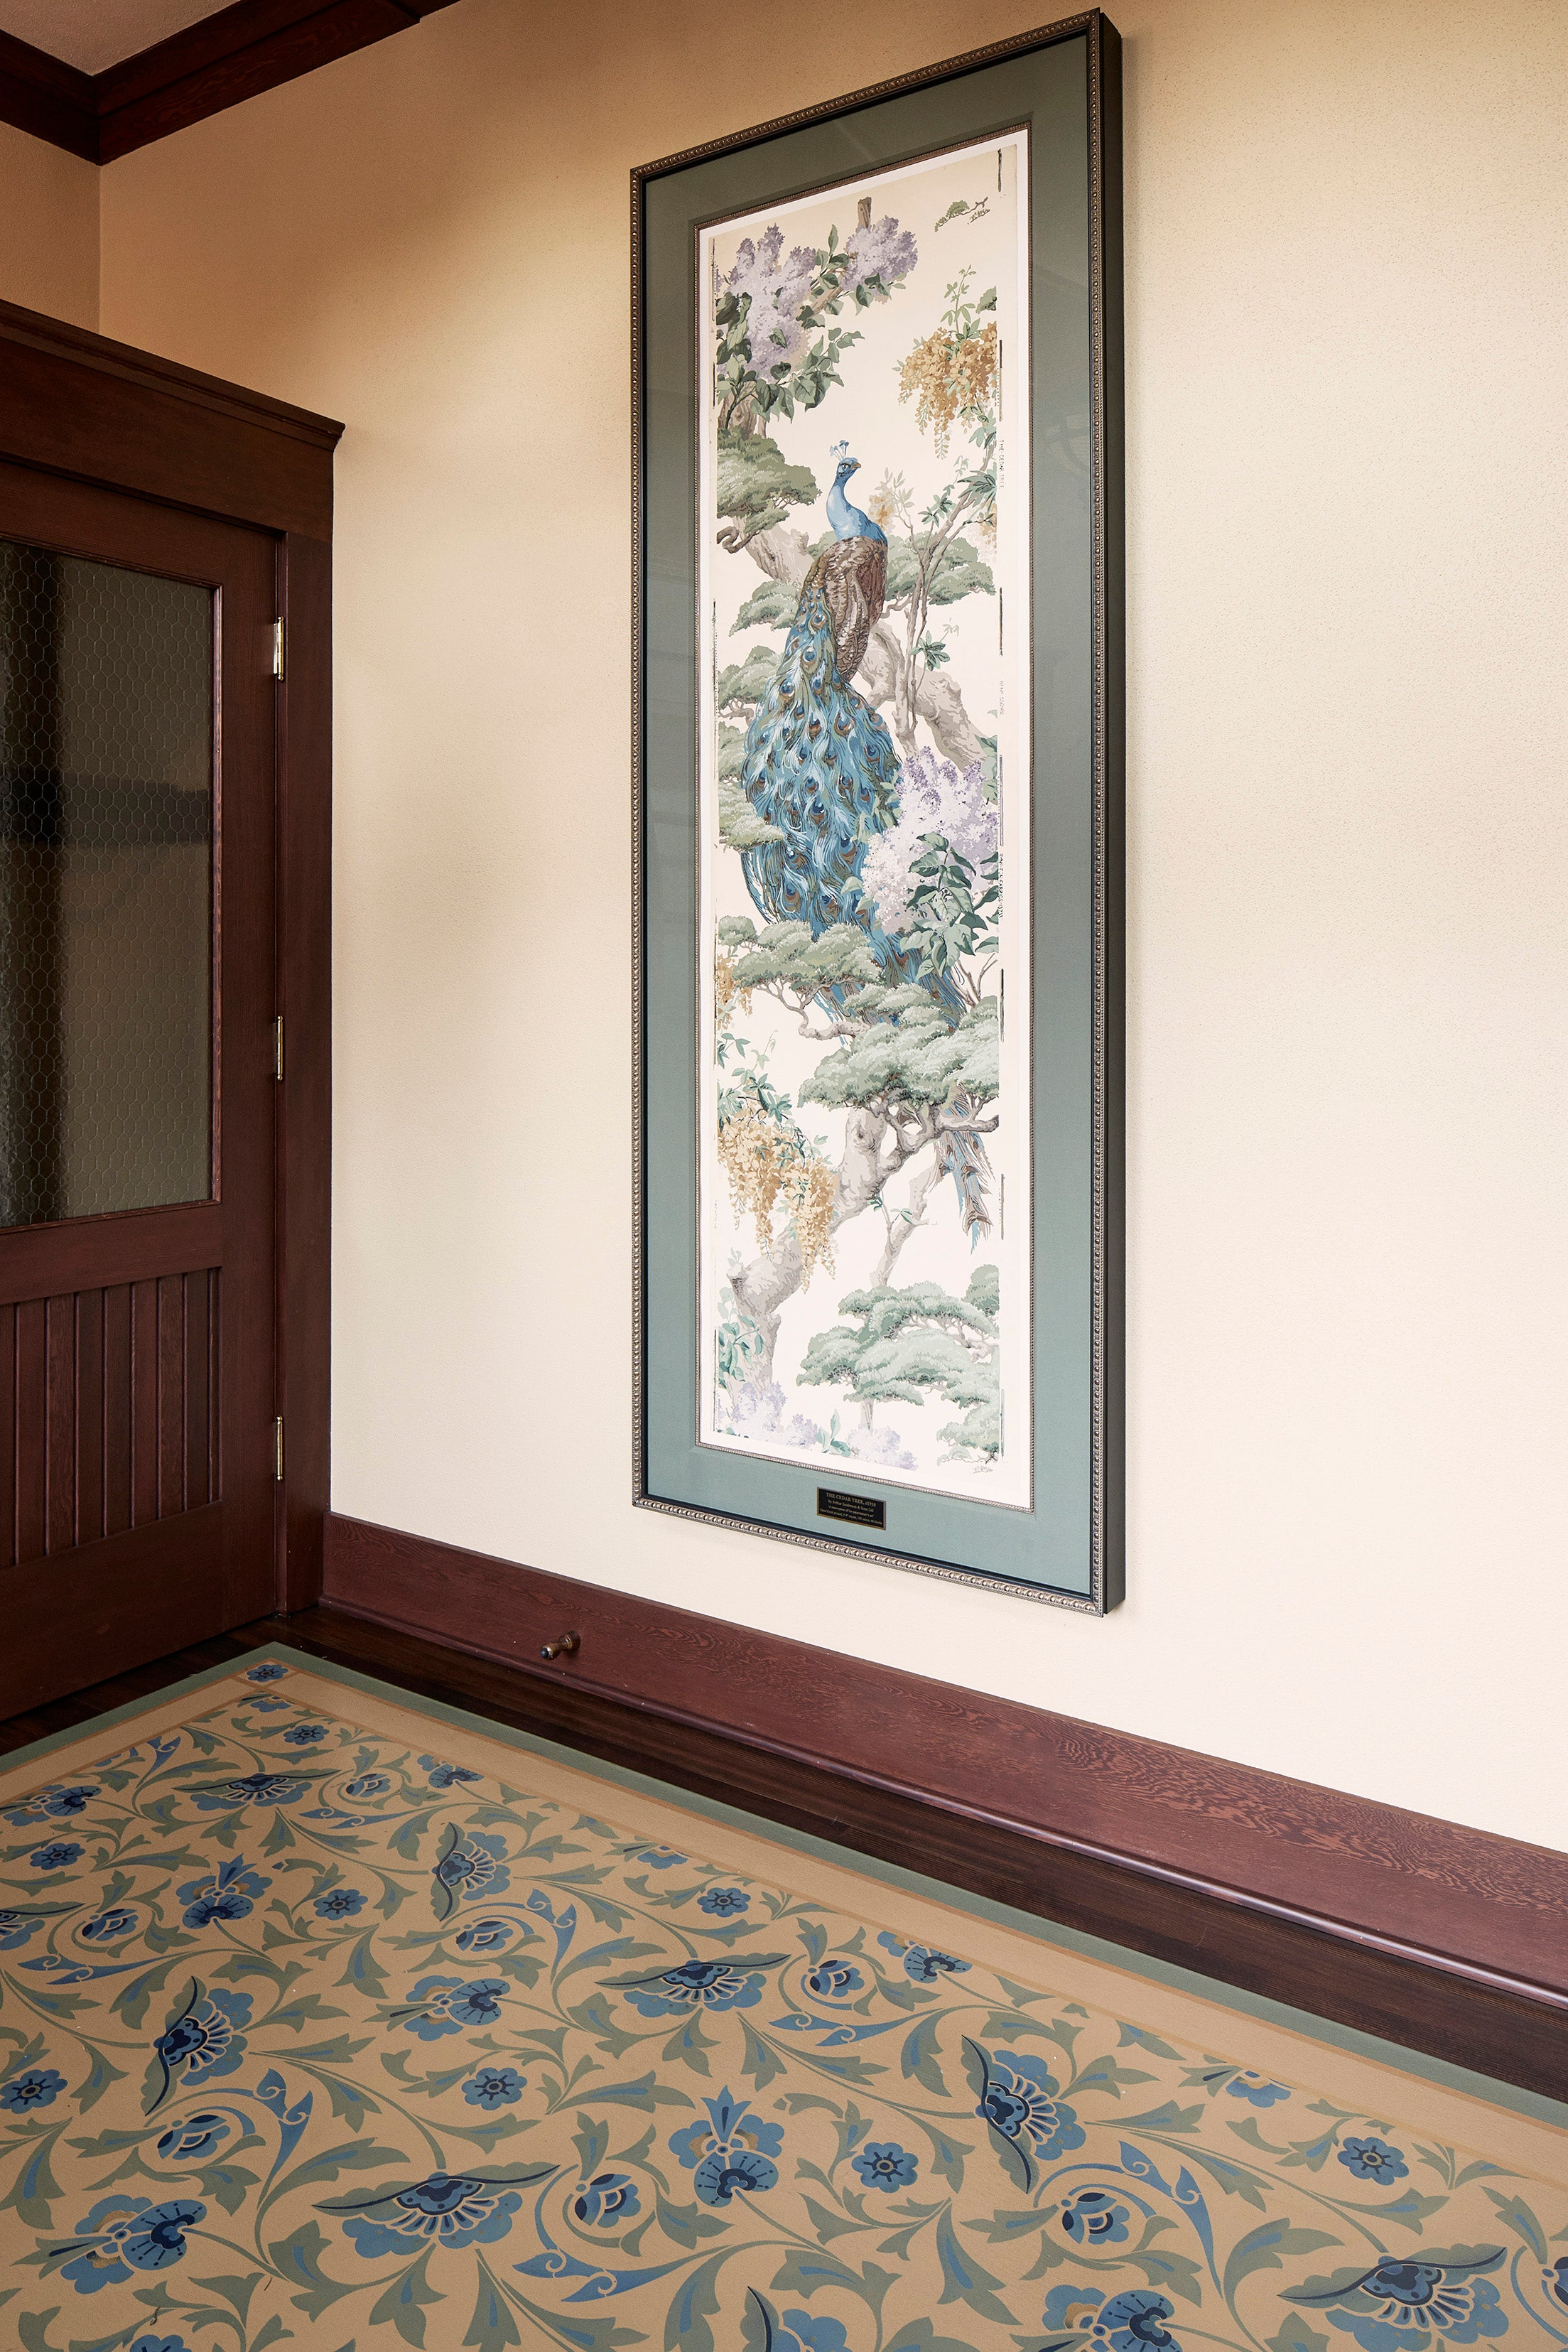 In-situ image of a shaped floorcloth, made to perfectly fit this space. The design is an all over floral pattern by Christopher Dresser. The Peacock is an original wallpaper panel c.1910 from Arthur Sanderson & Sons. Photo by Sally Painter.